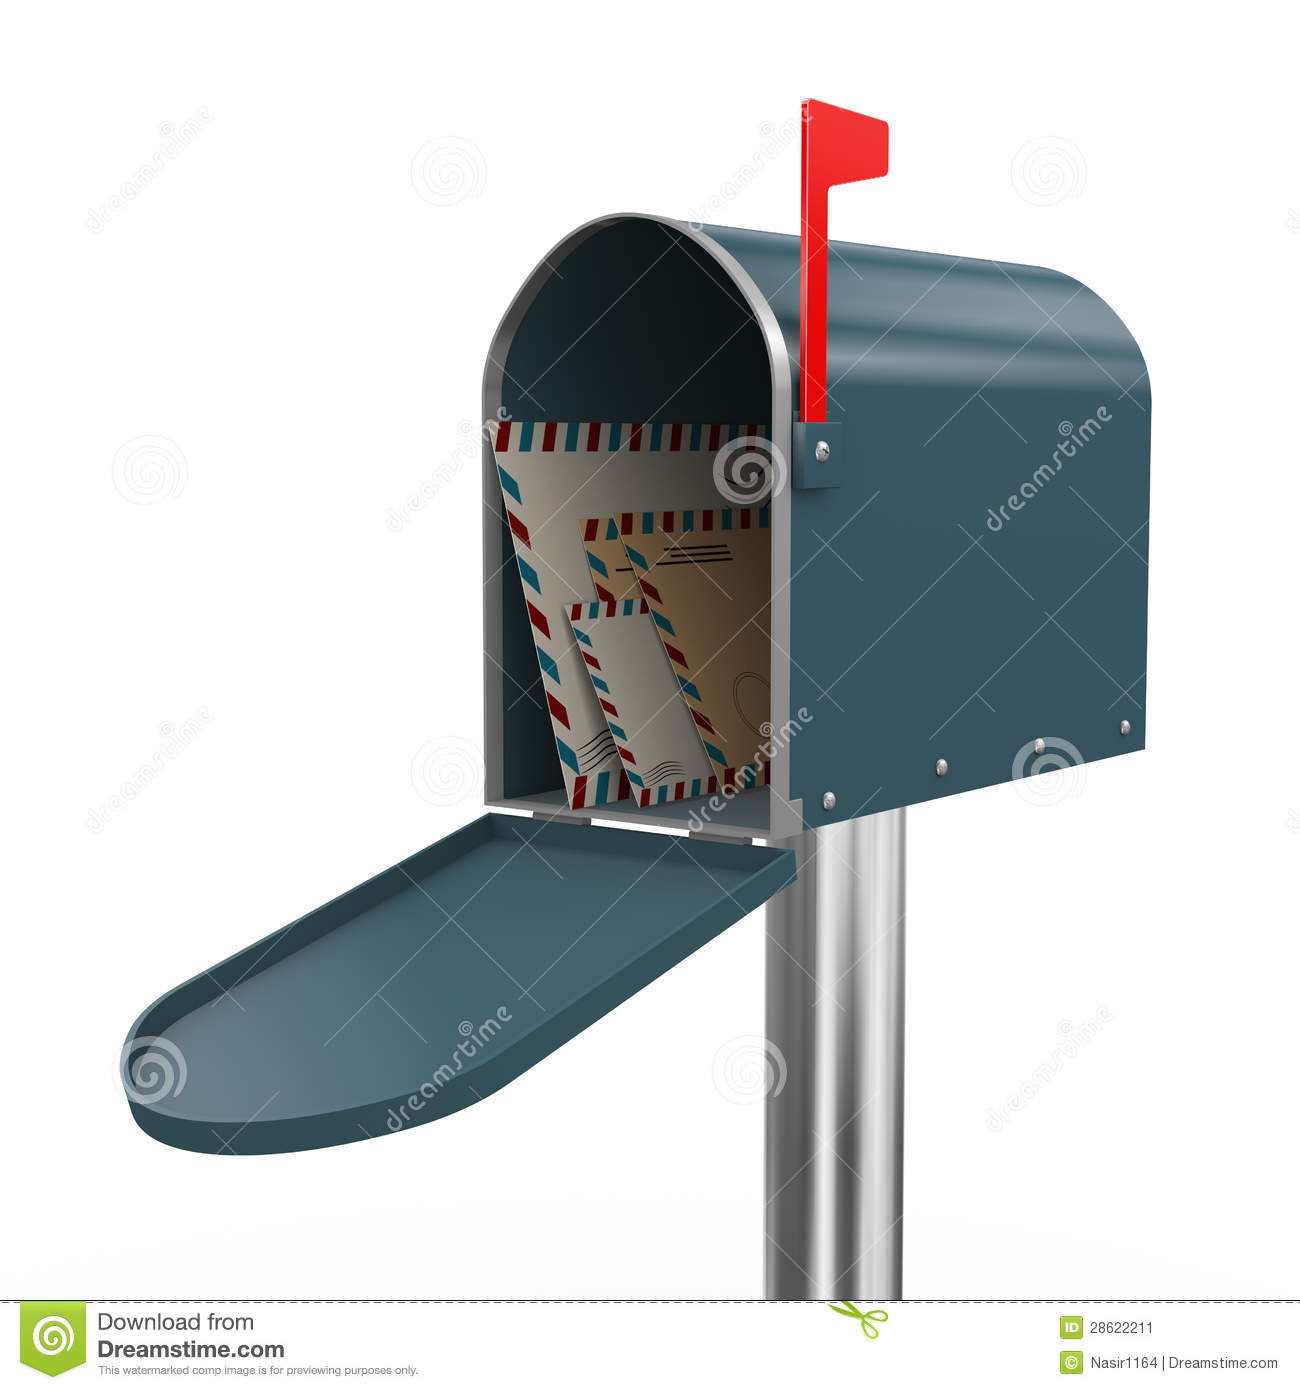 3d Envelopes In Mailbox Stock Image - Image: 28622211